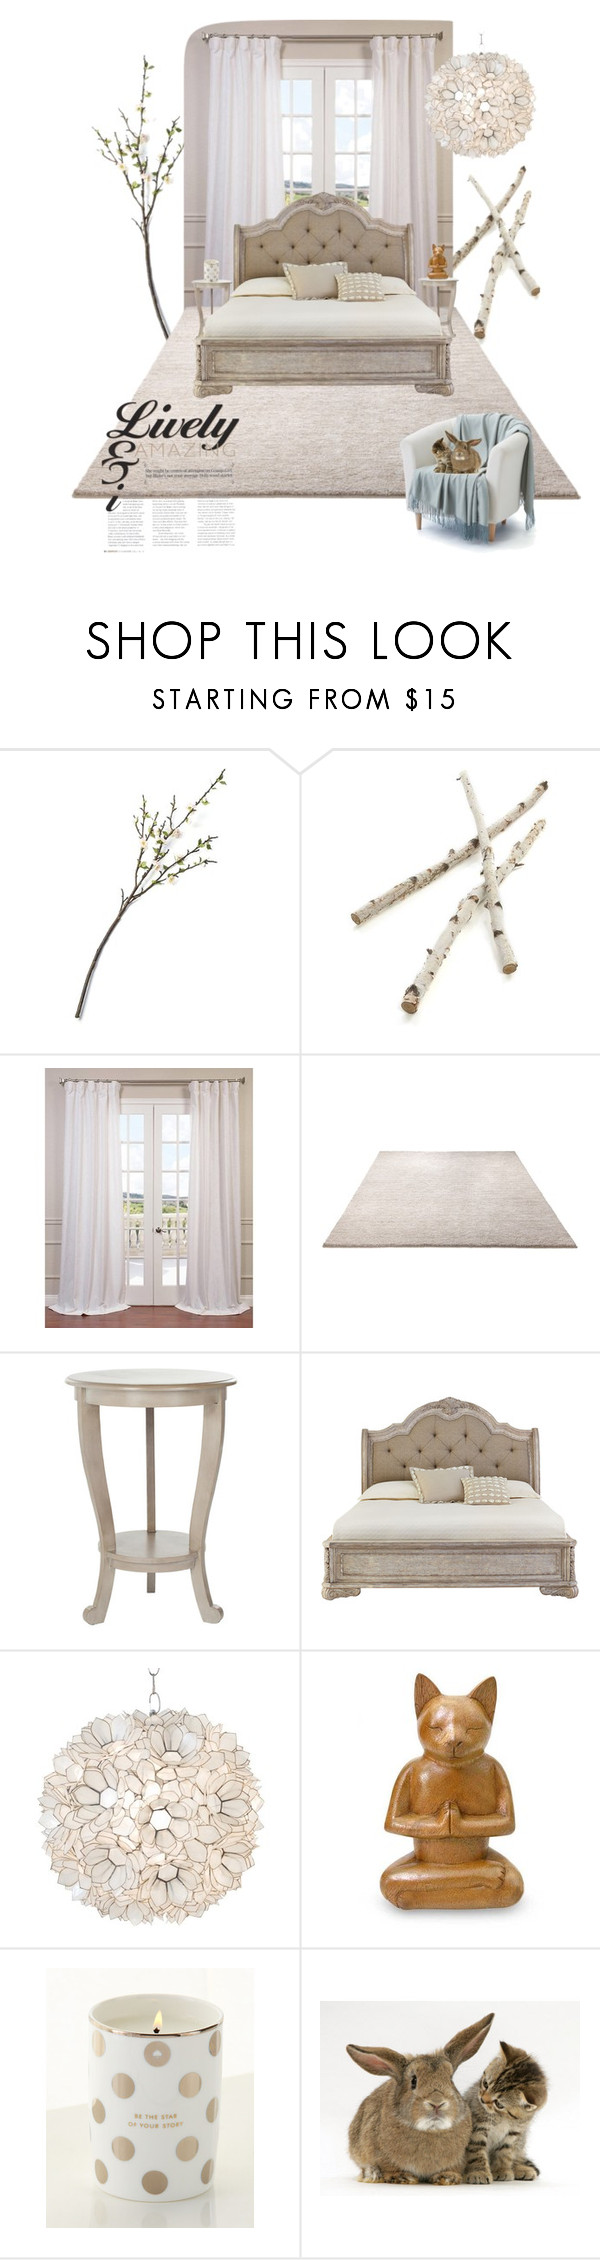 """""""Relaxing bedroom on the countryside"""" by katleen-f ❤ liked on Polyvore featuring interior, interiors, interior design, home, home decor, interior decorating, Crate and Barrel, ESPRIT, Safavieh and Worlds Away"""